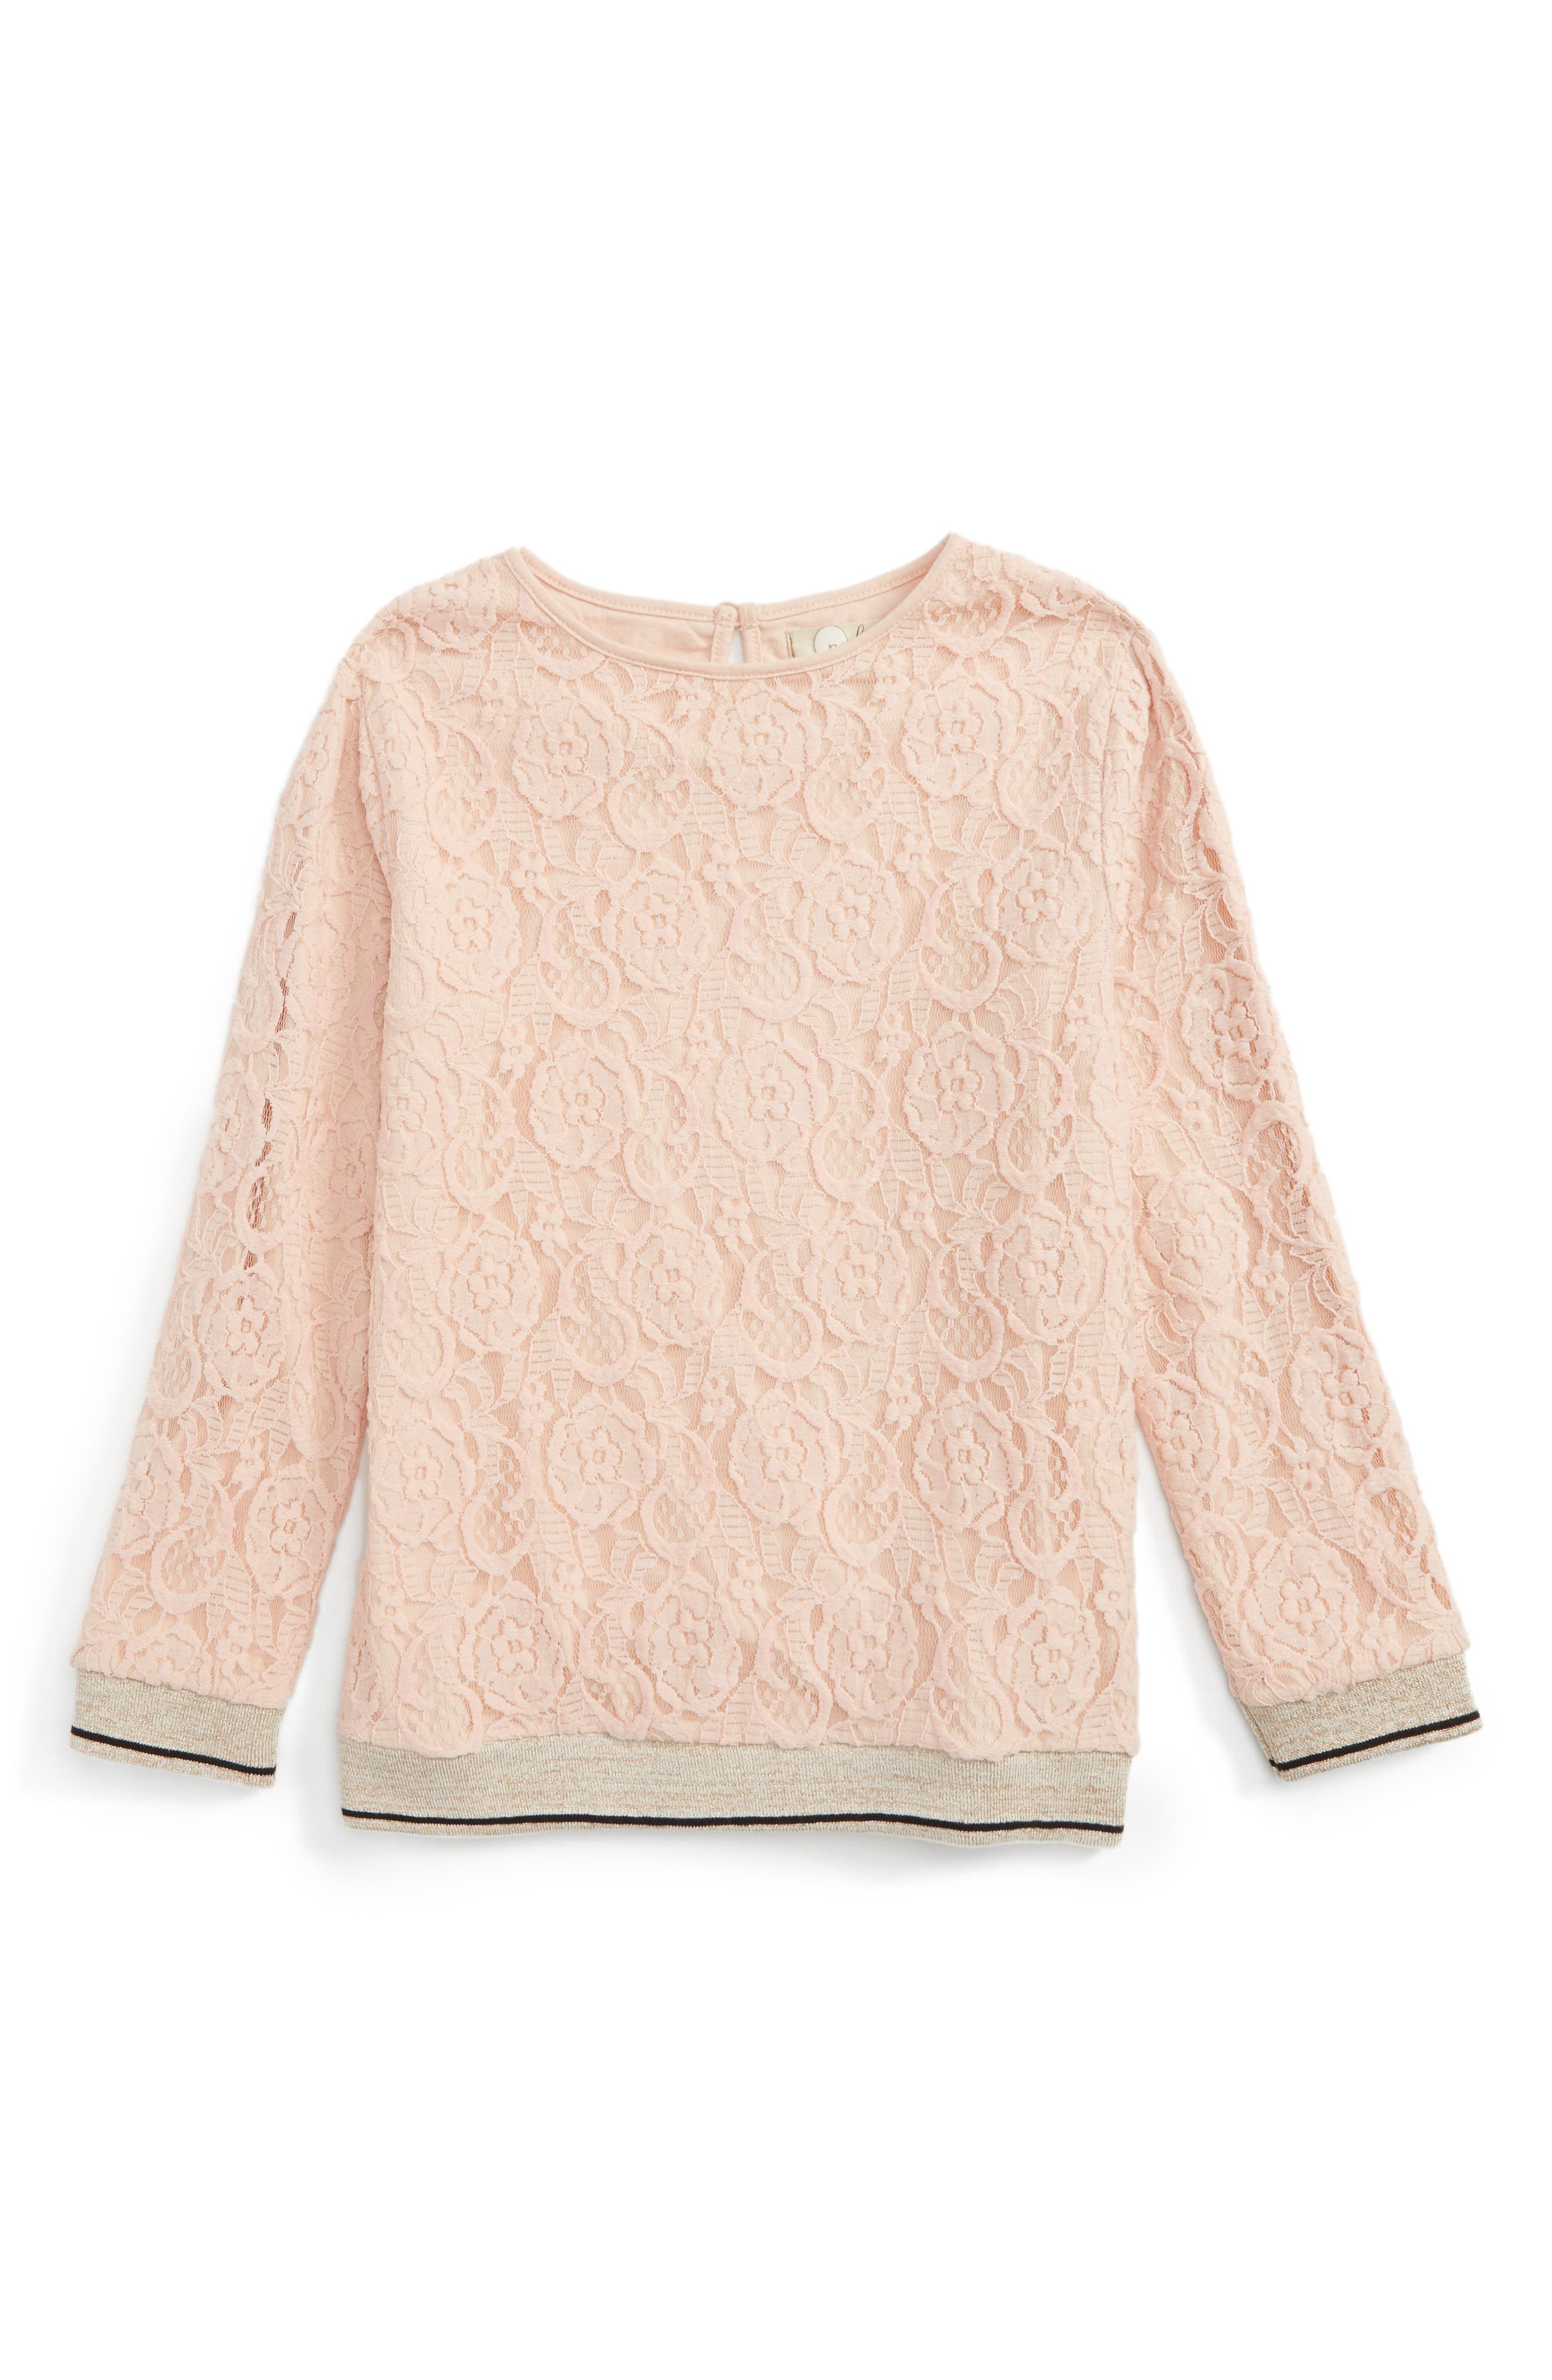 Alternate Image 1 Selected - Peek Grace Lace Overlay Top (Toddler Girls, Little Girls & Big Girls)